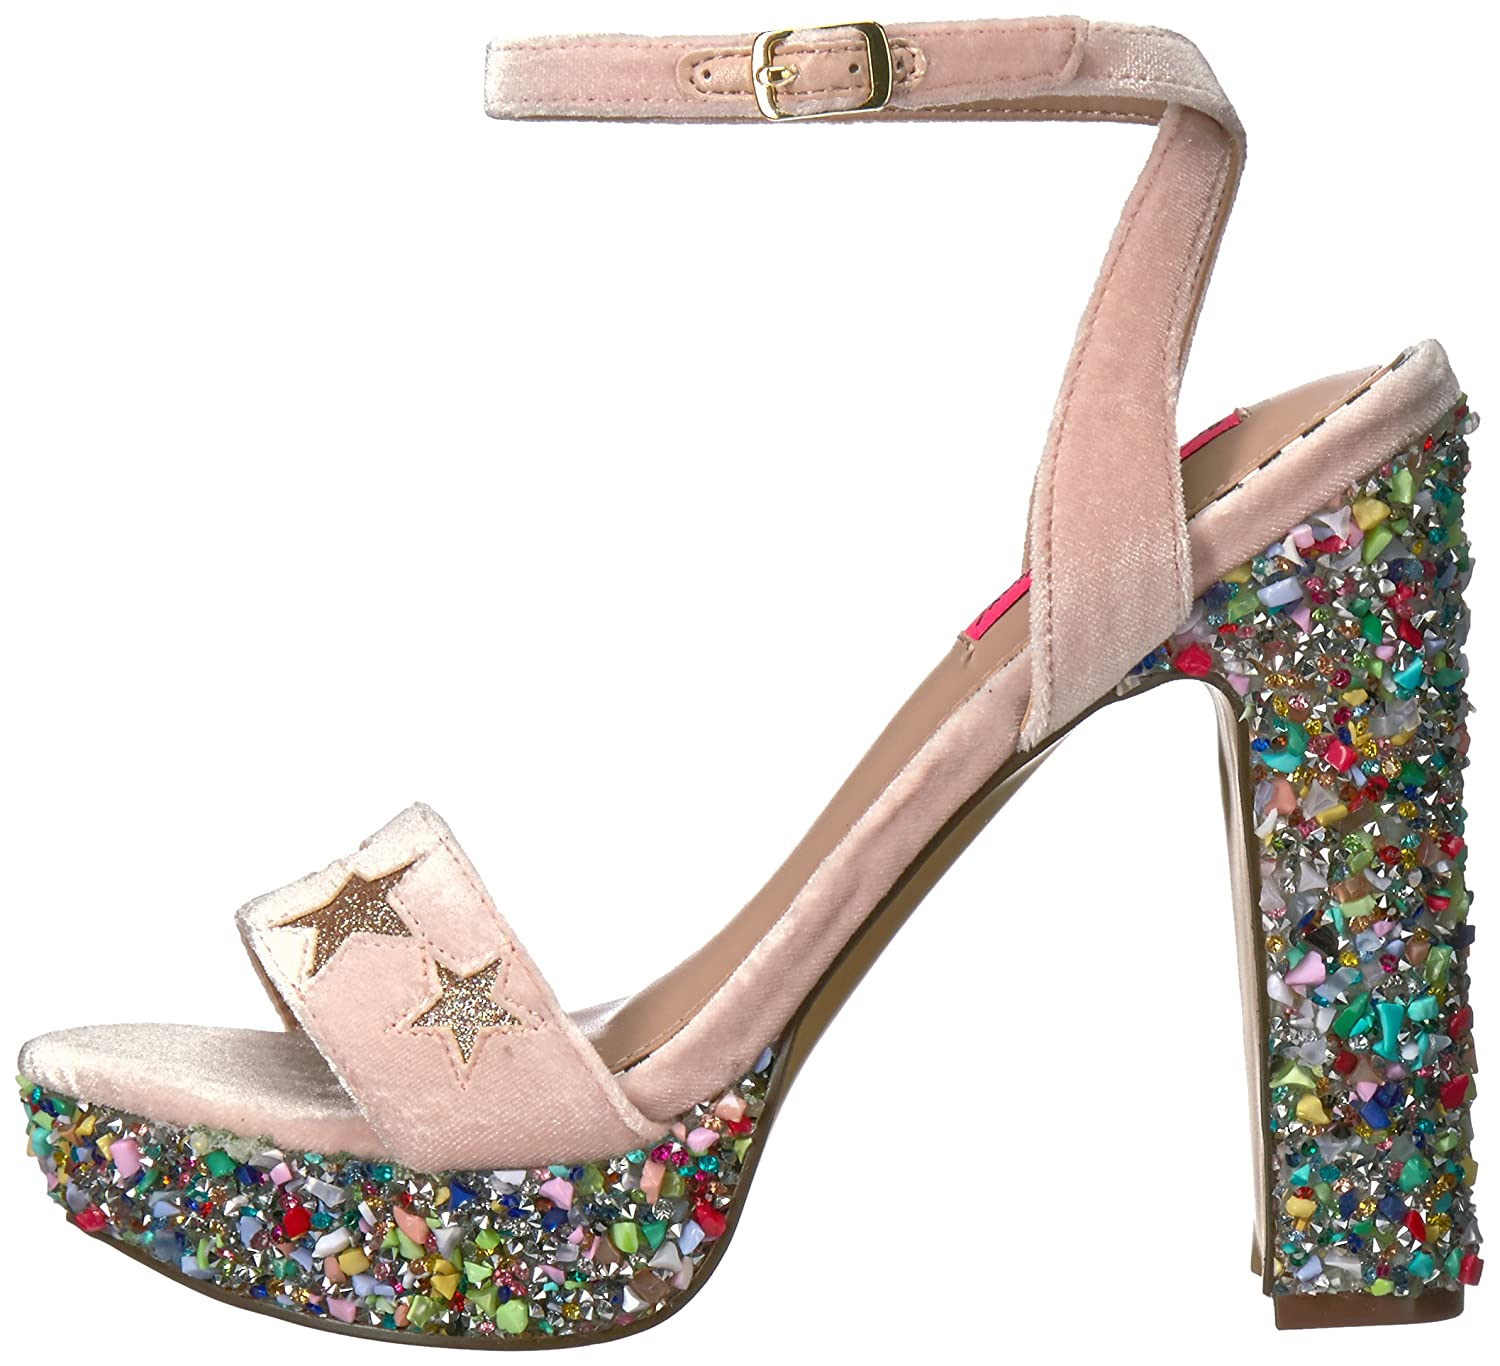 f500509c272 Betsey Johnson Women s Kenna Dress Sandal  Buy Online at Low Prices in  India - Amazon.in